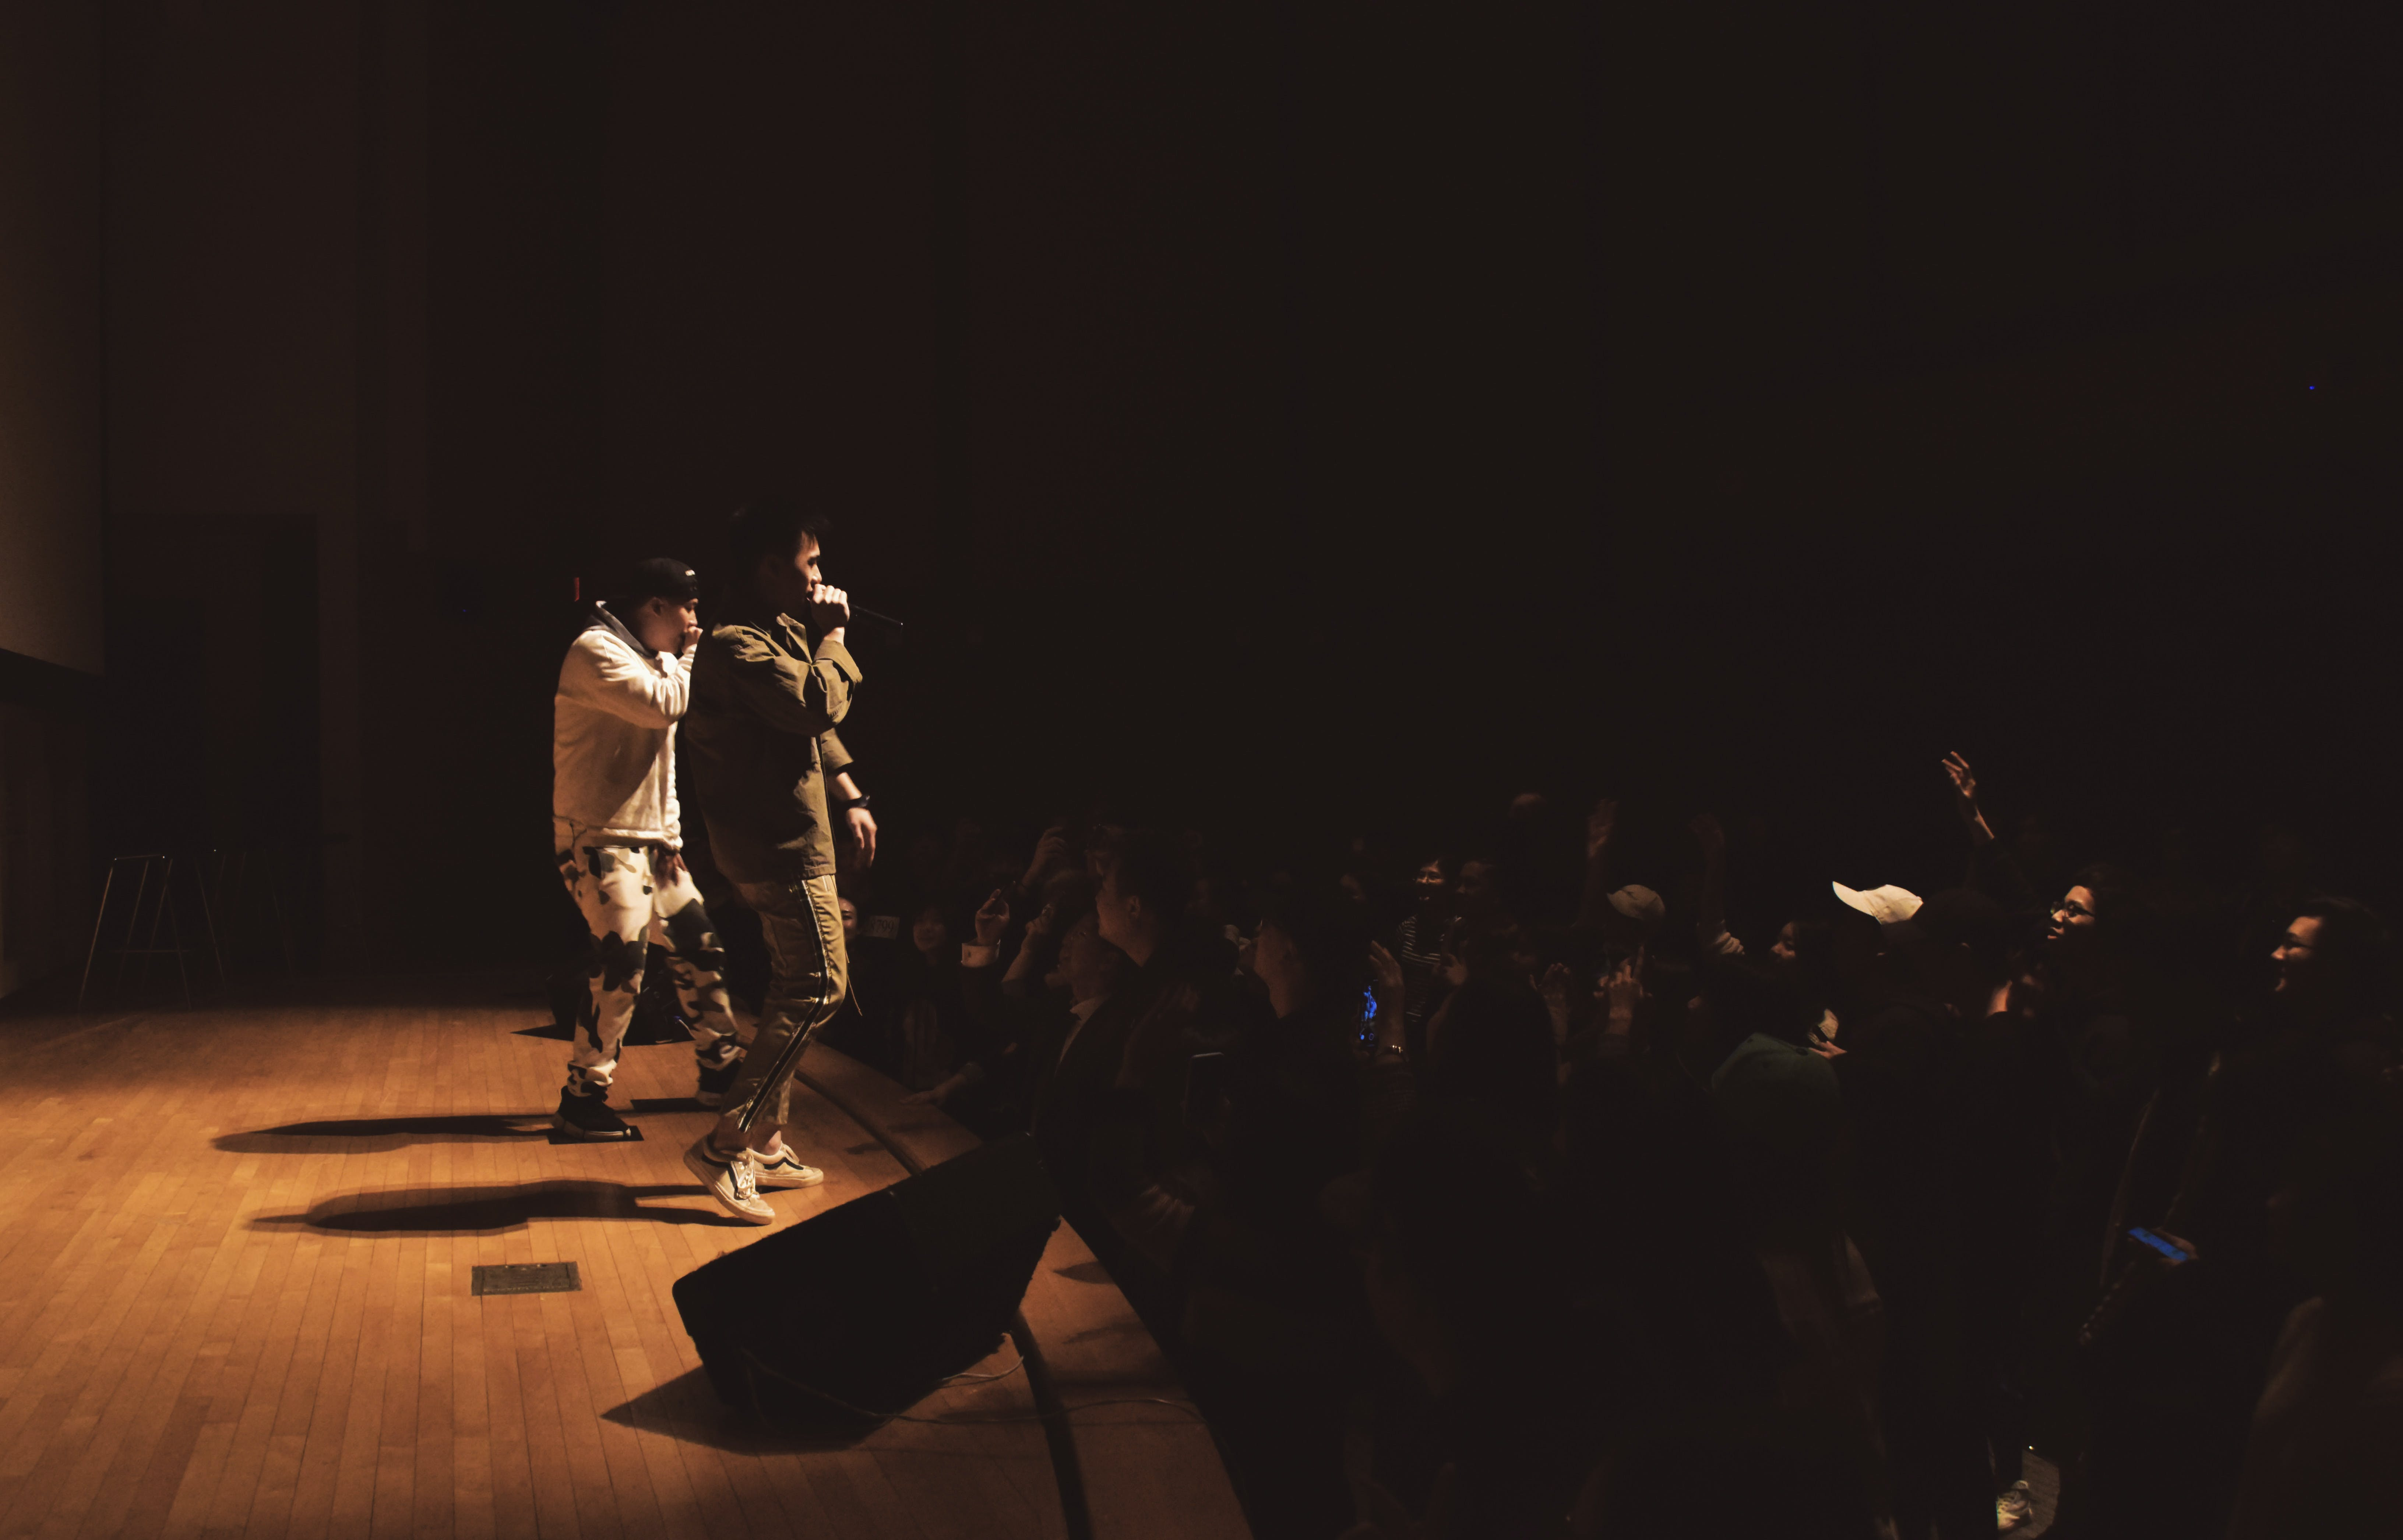 Free stock photo of live show, rap music, singers